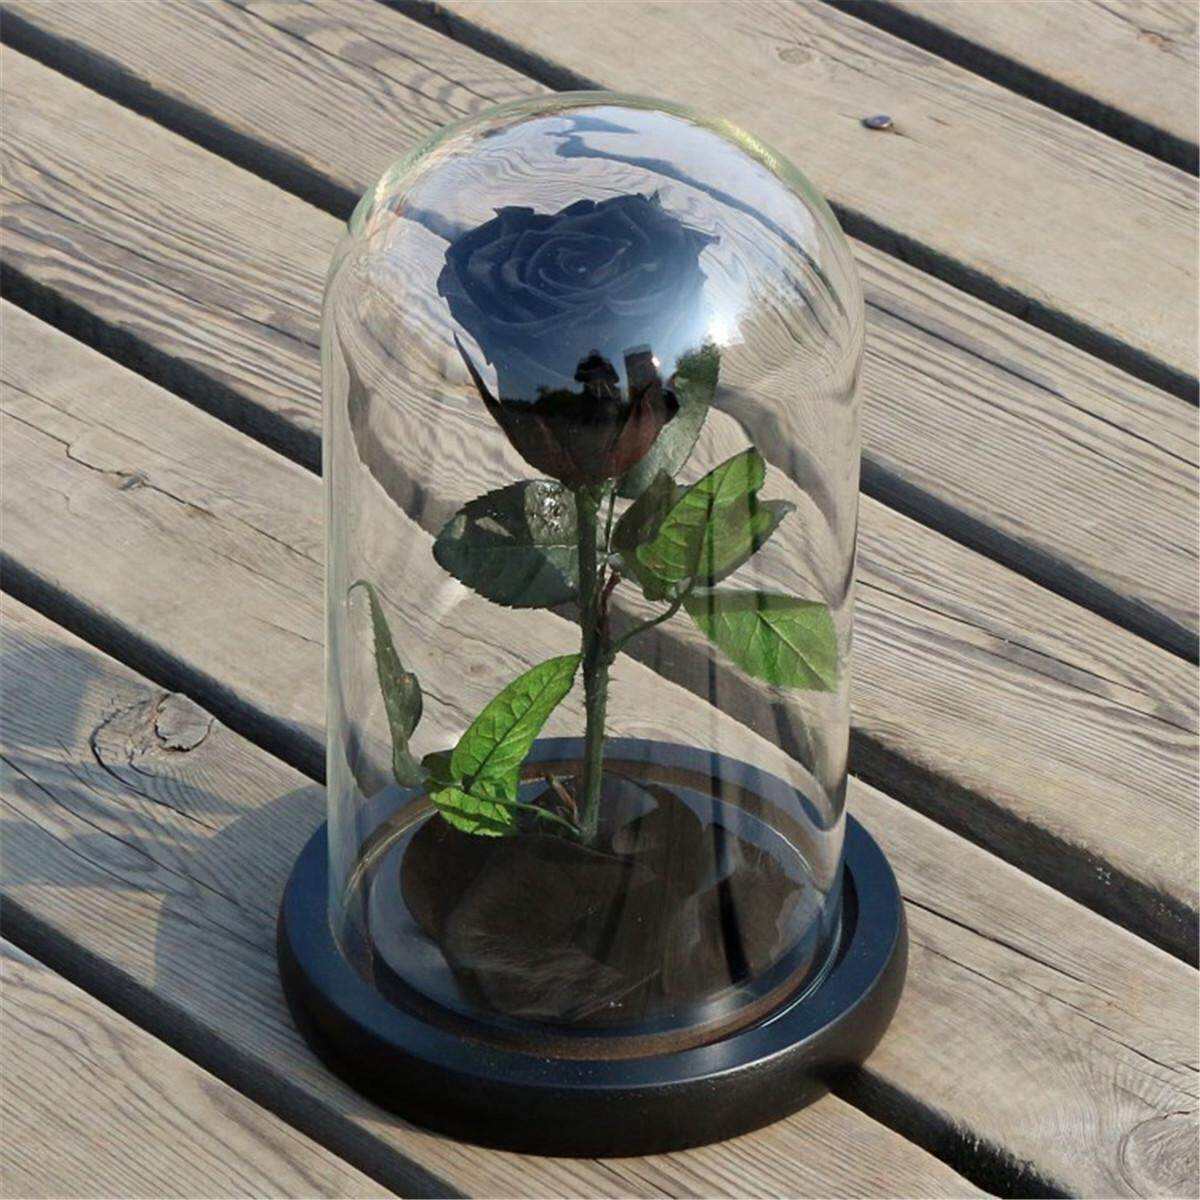 (photo)Forever Rose Flower Festive Preserved Immortal Fresh Rose in Glass Unique Gifts # Black